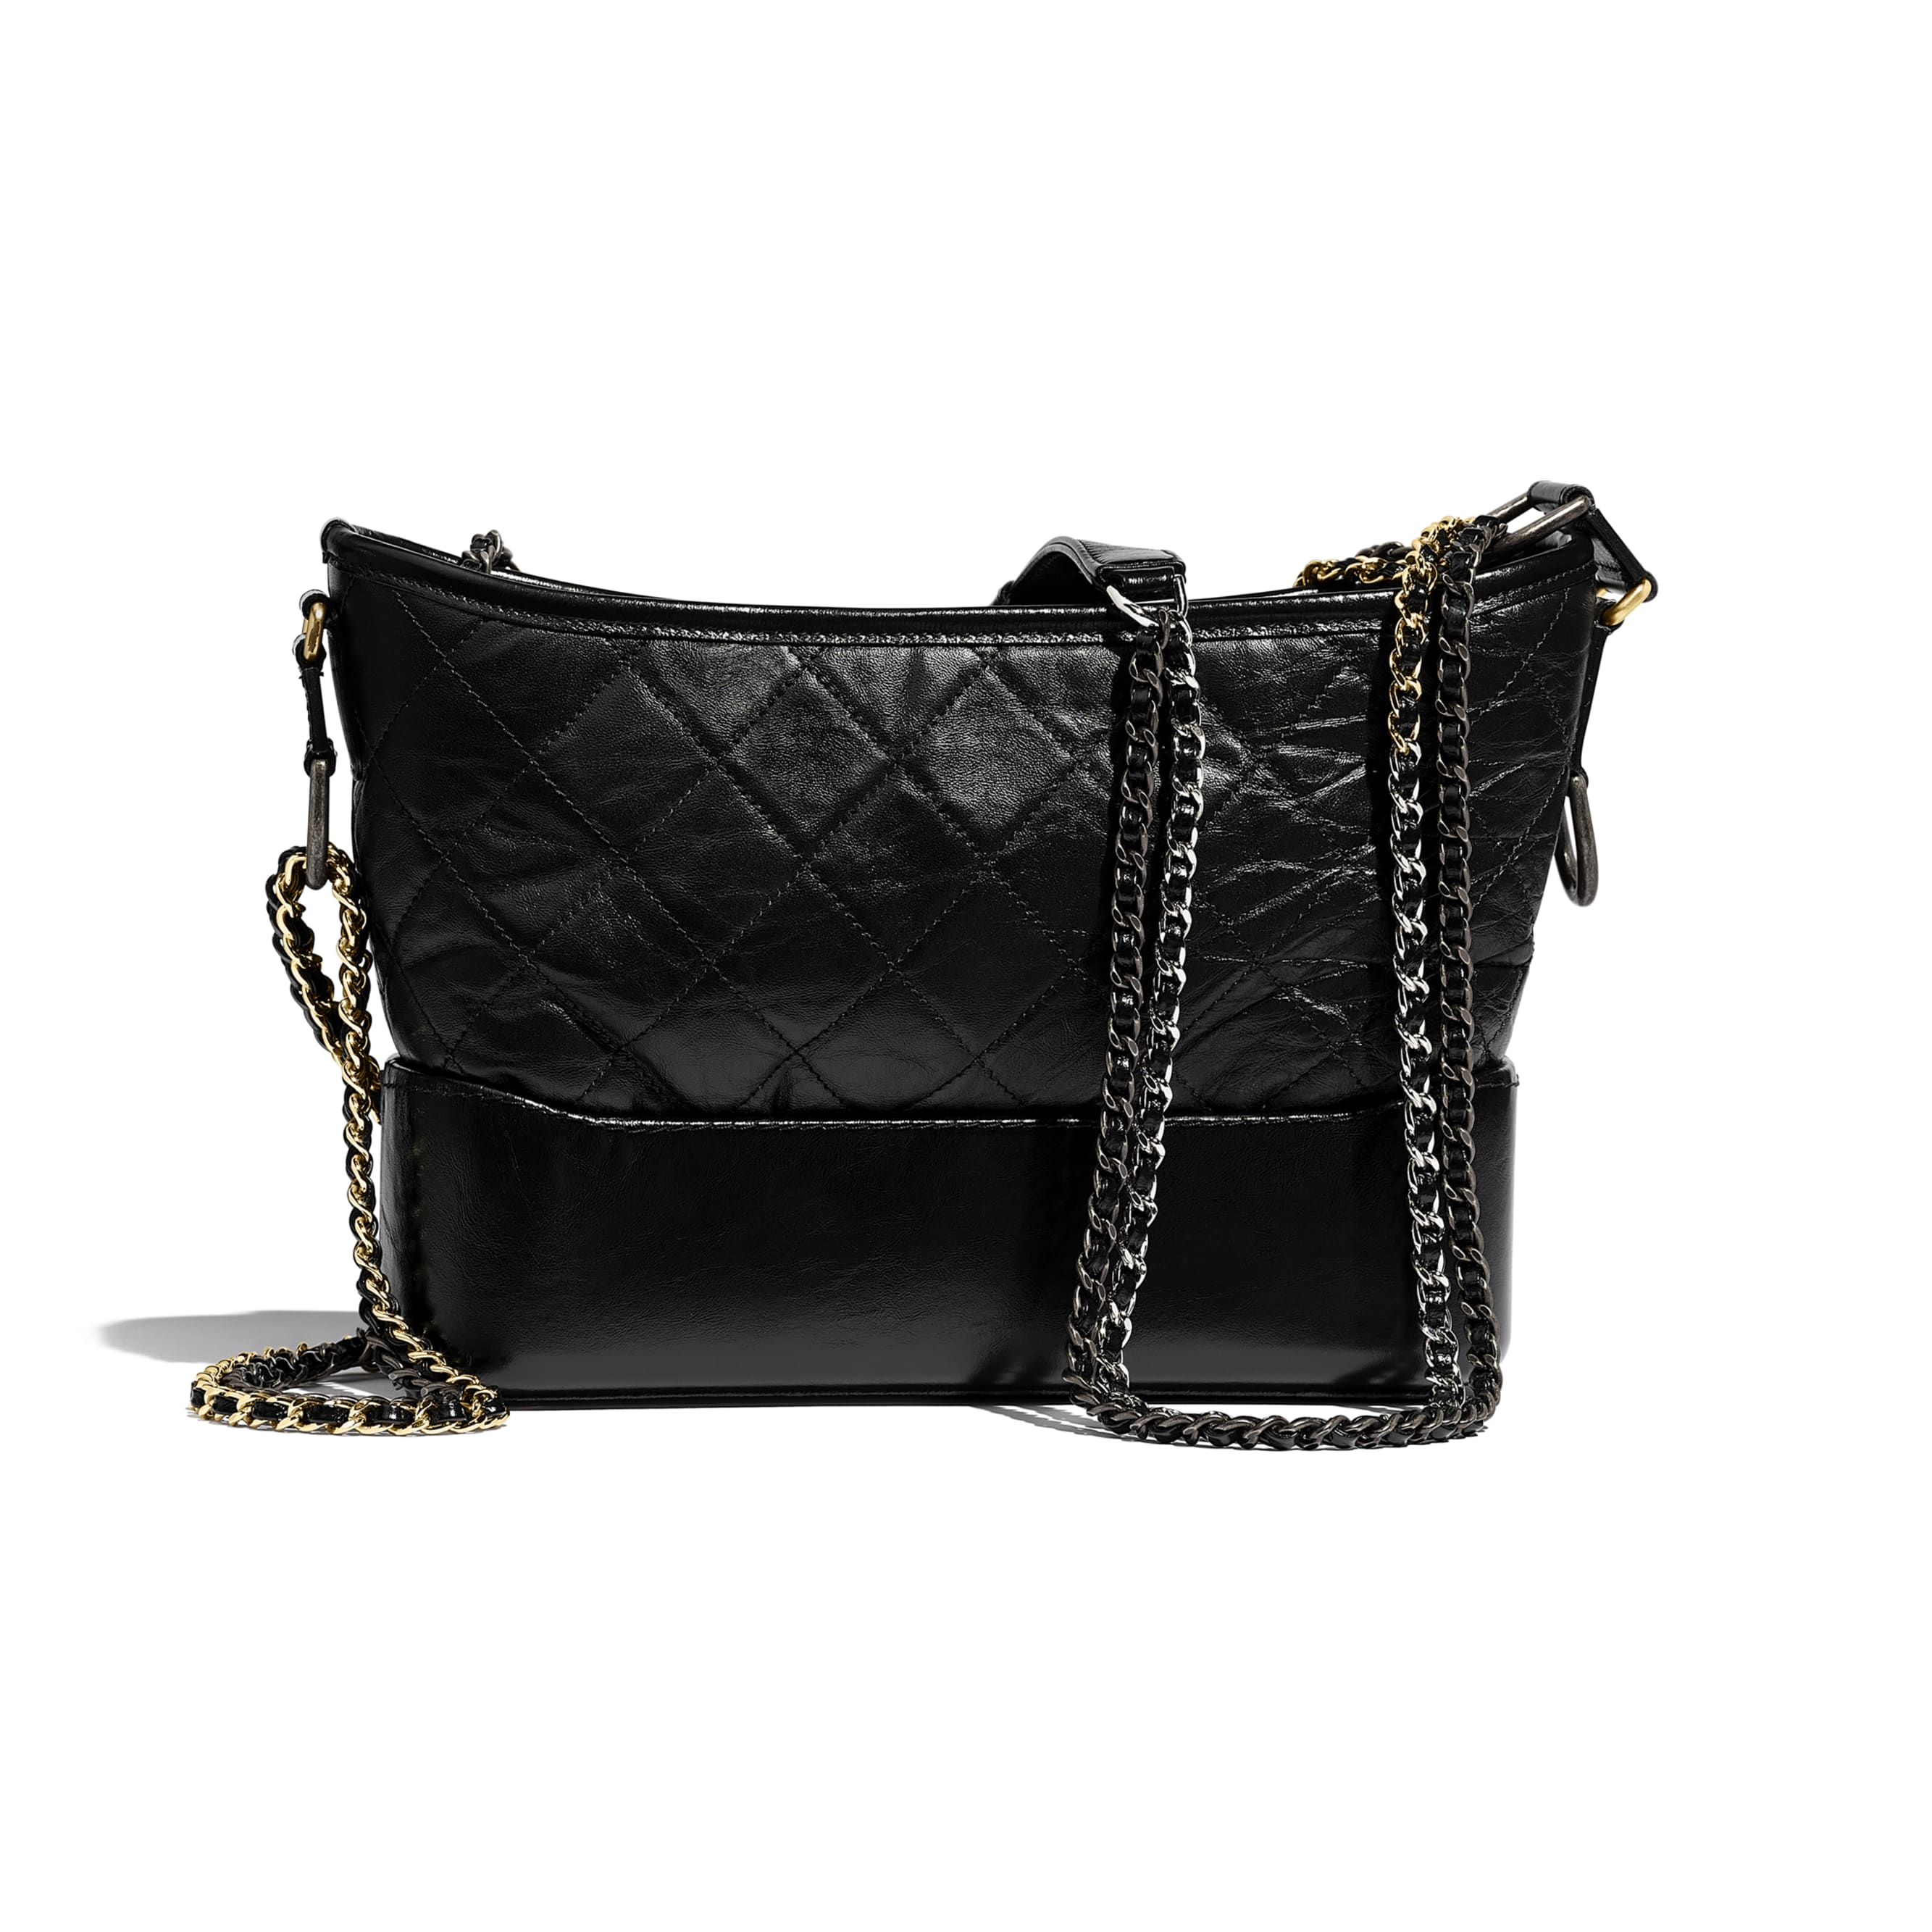 CHANEL'S GABRIELLE Hobo Handbag - Black - Aged Calfskin, Smooth Calfskin, Gold-Tone, Silver-Tone & Ruthenium-Finish Metal - CHANEL - Alternative view - see standard sized version